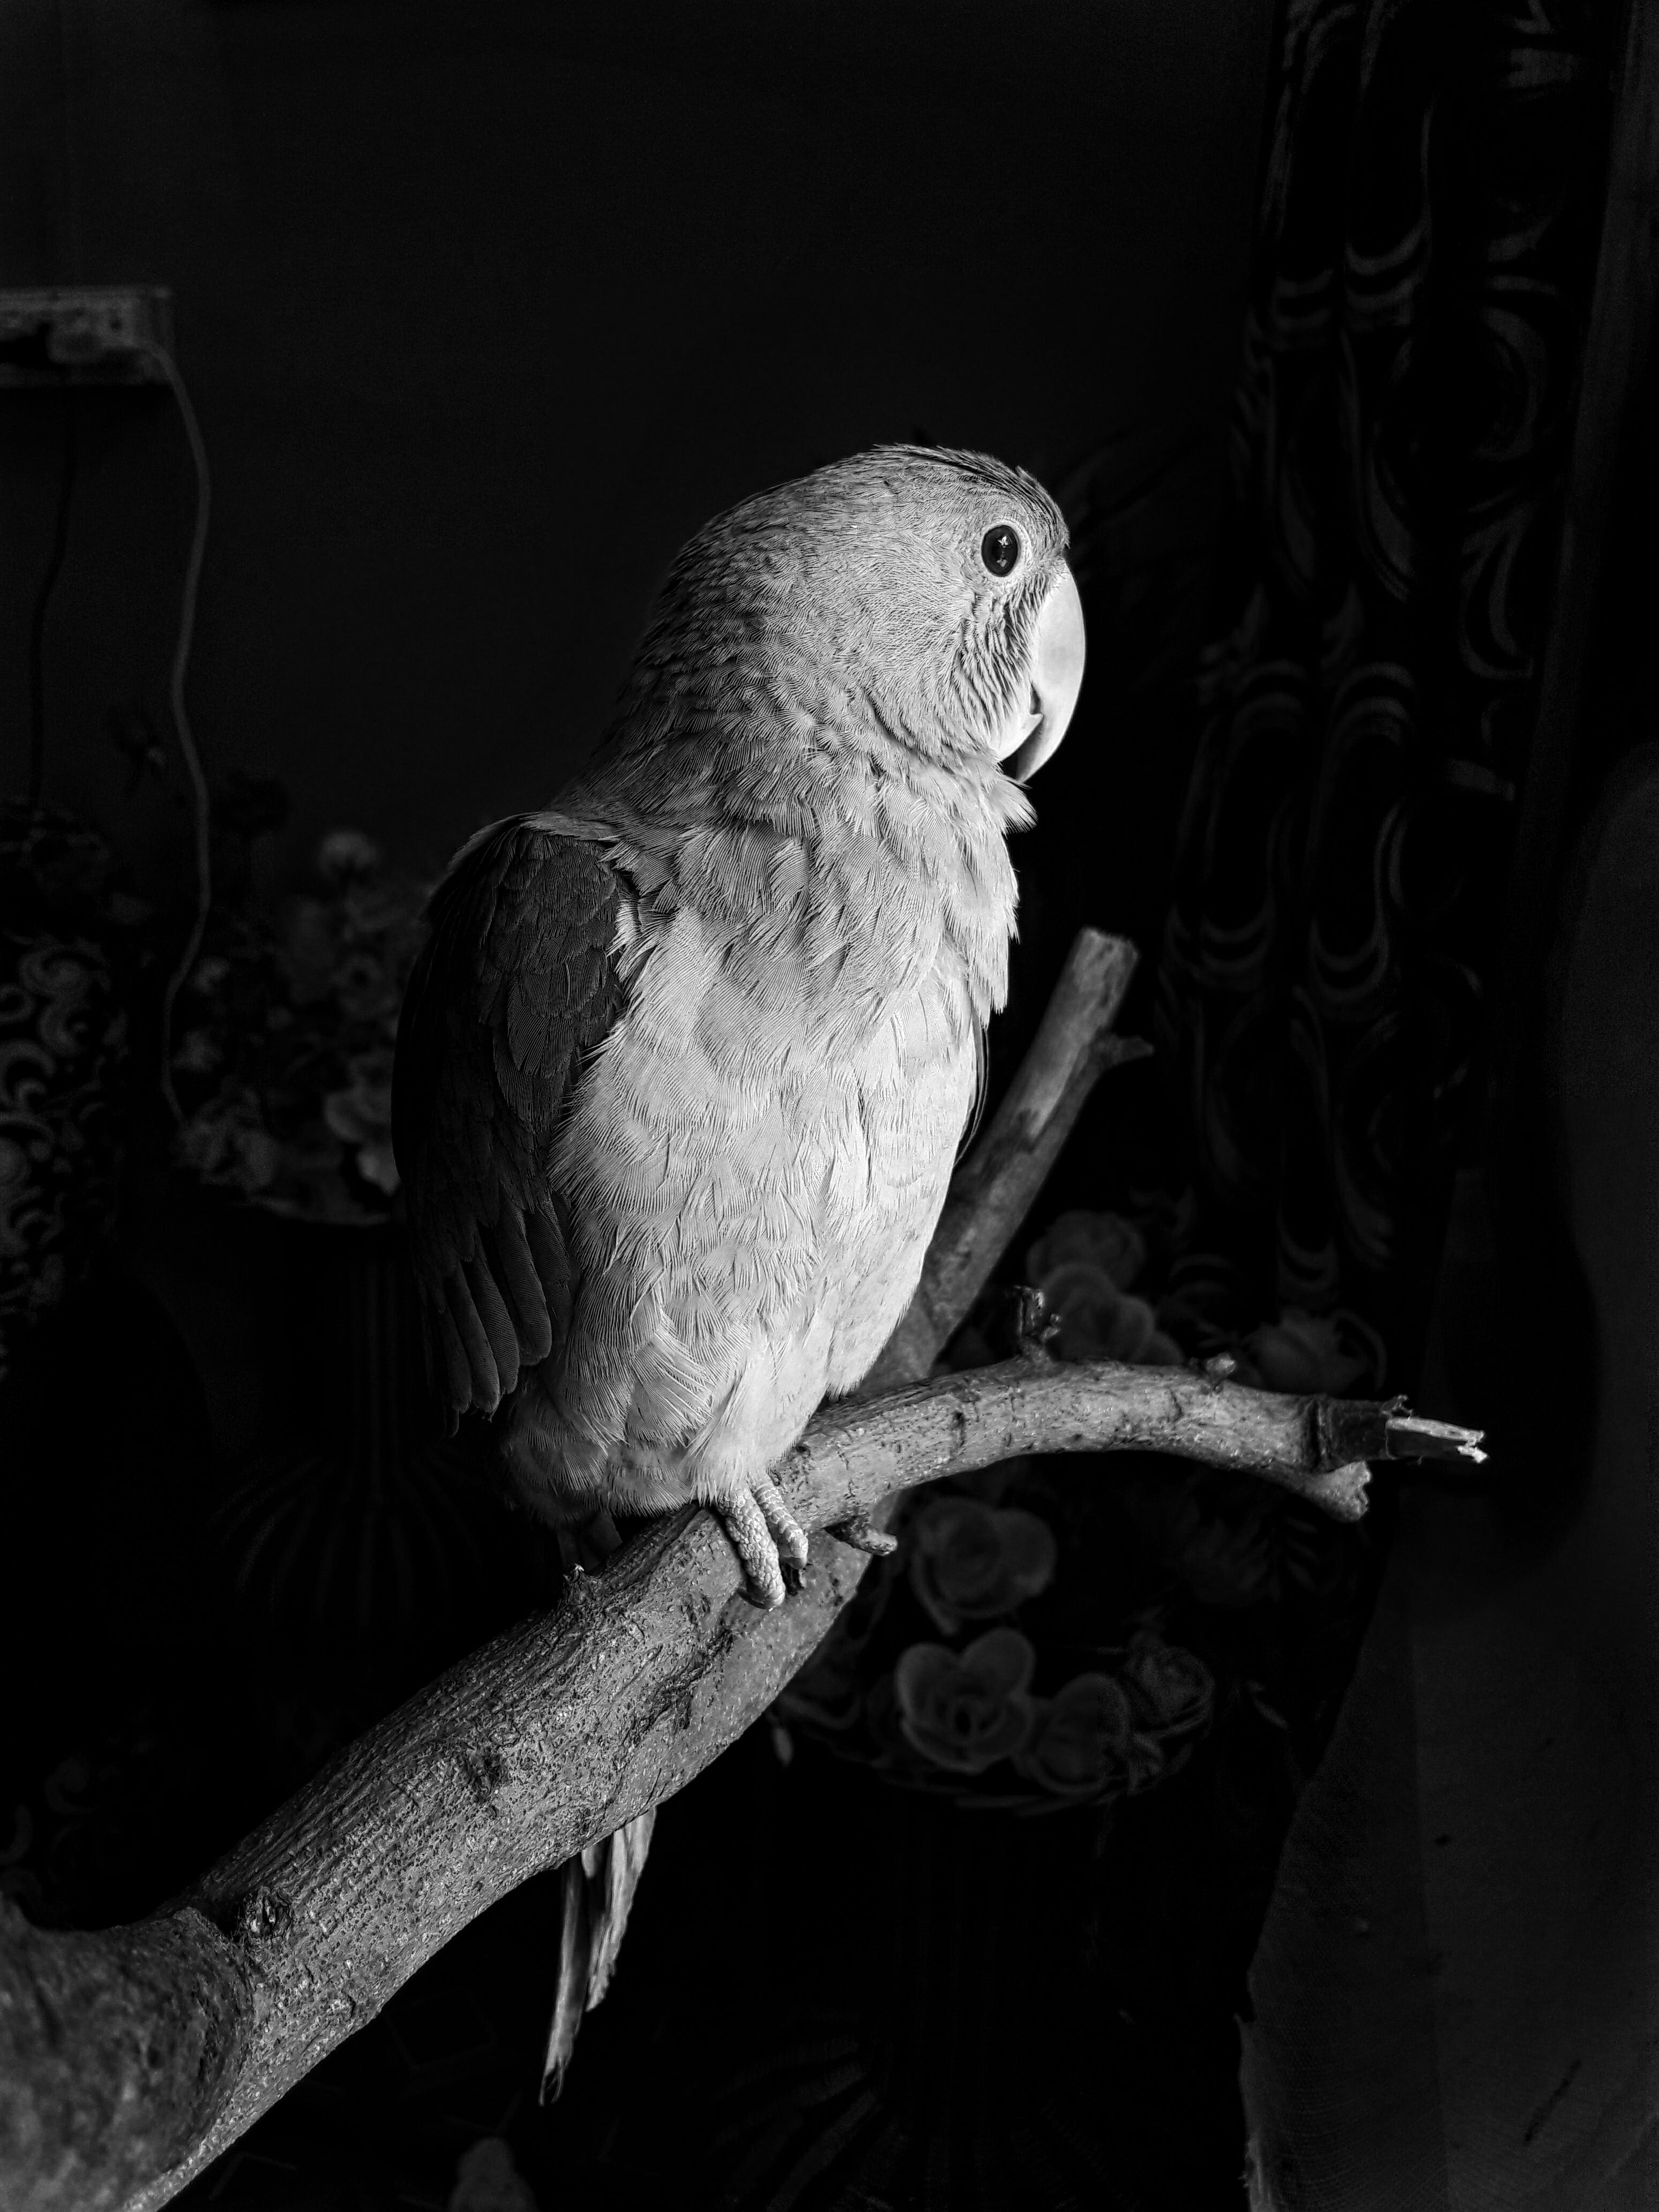 Monochrome Photography of Parrot